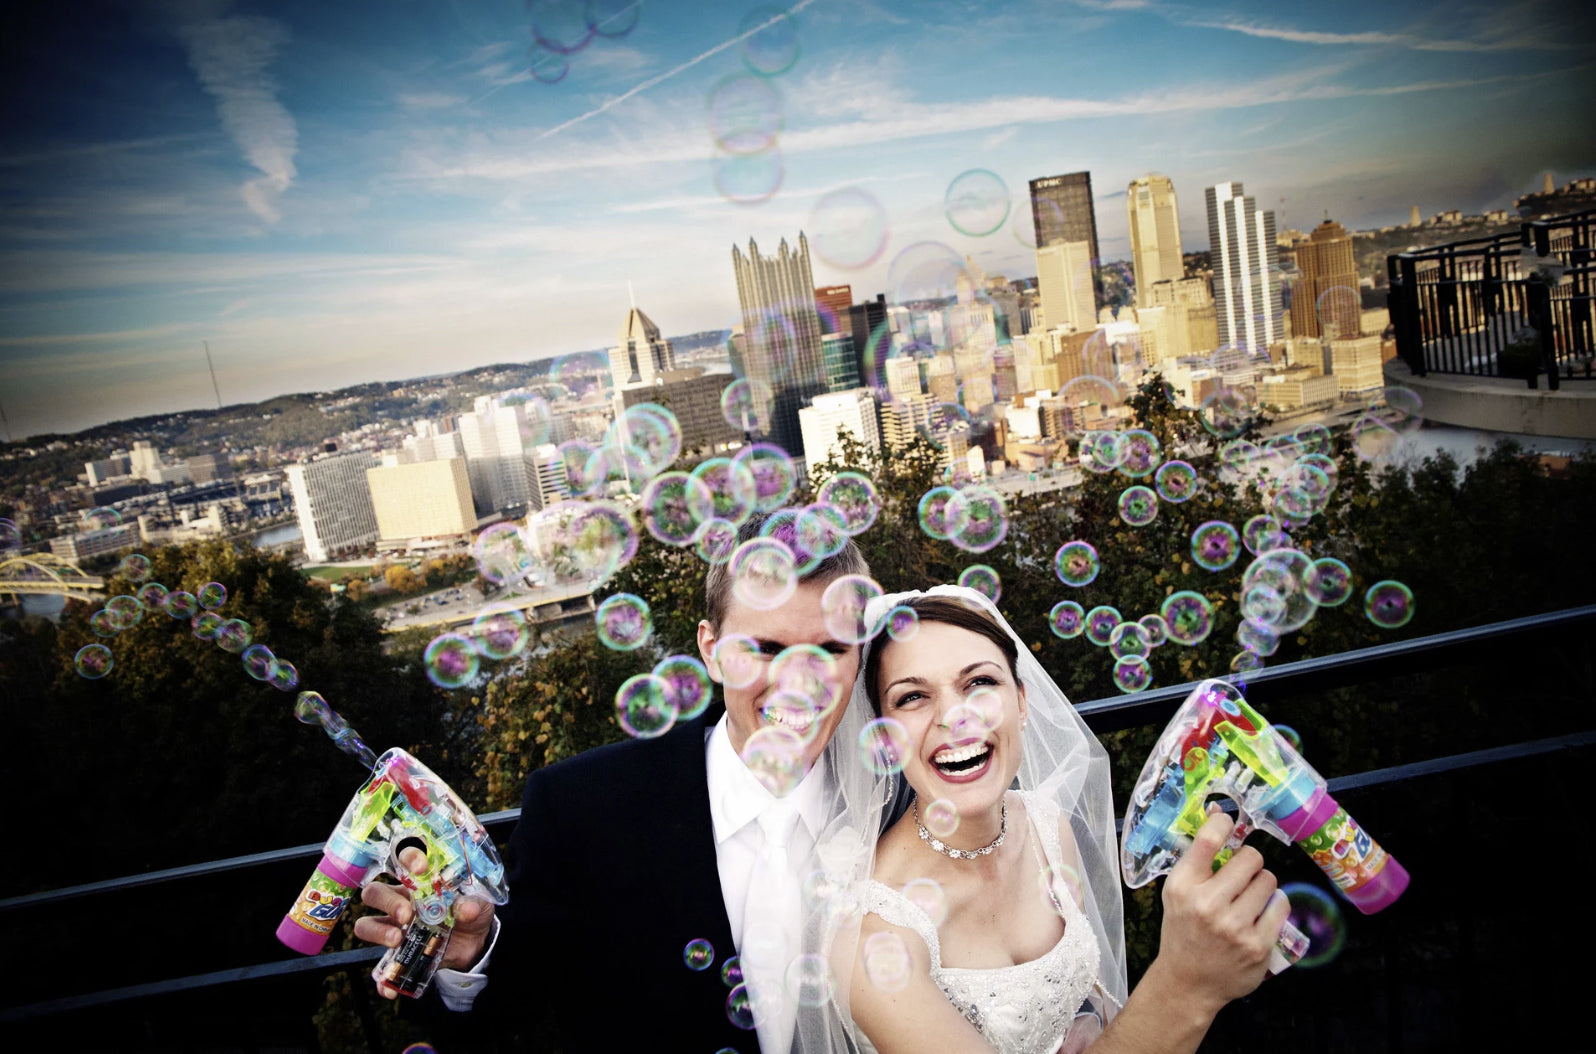 Bride and groom blowing bubbles from bubble-making guns